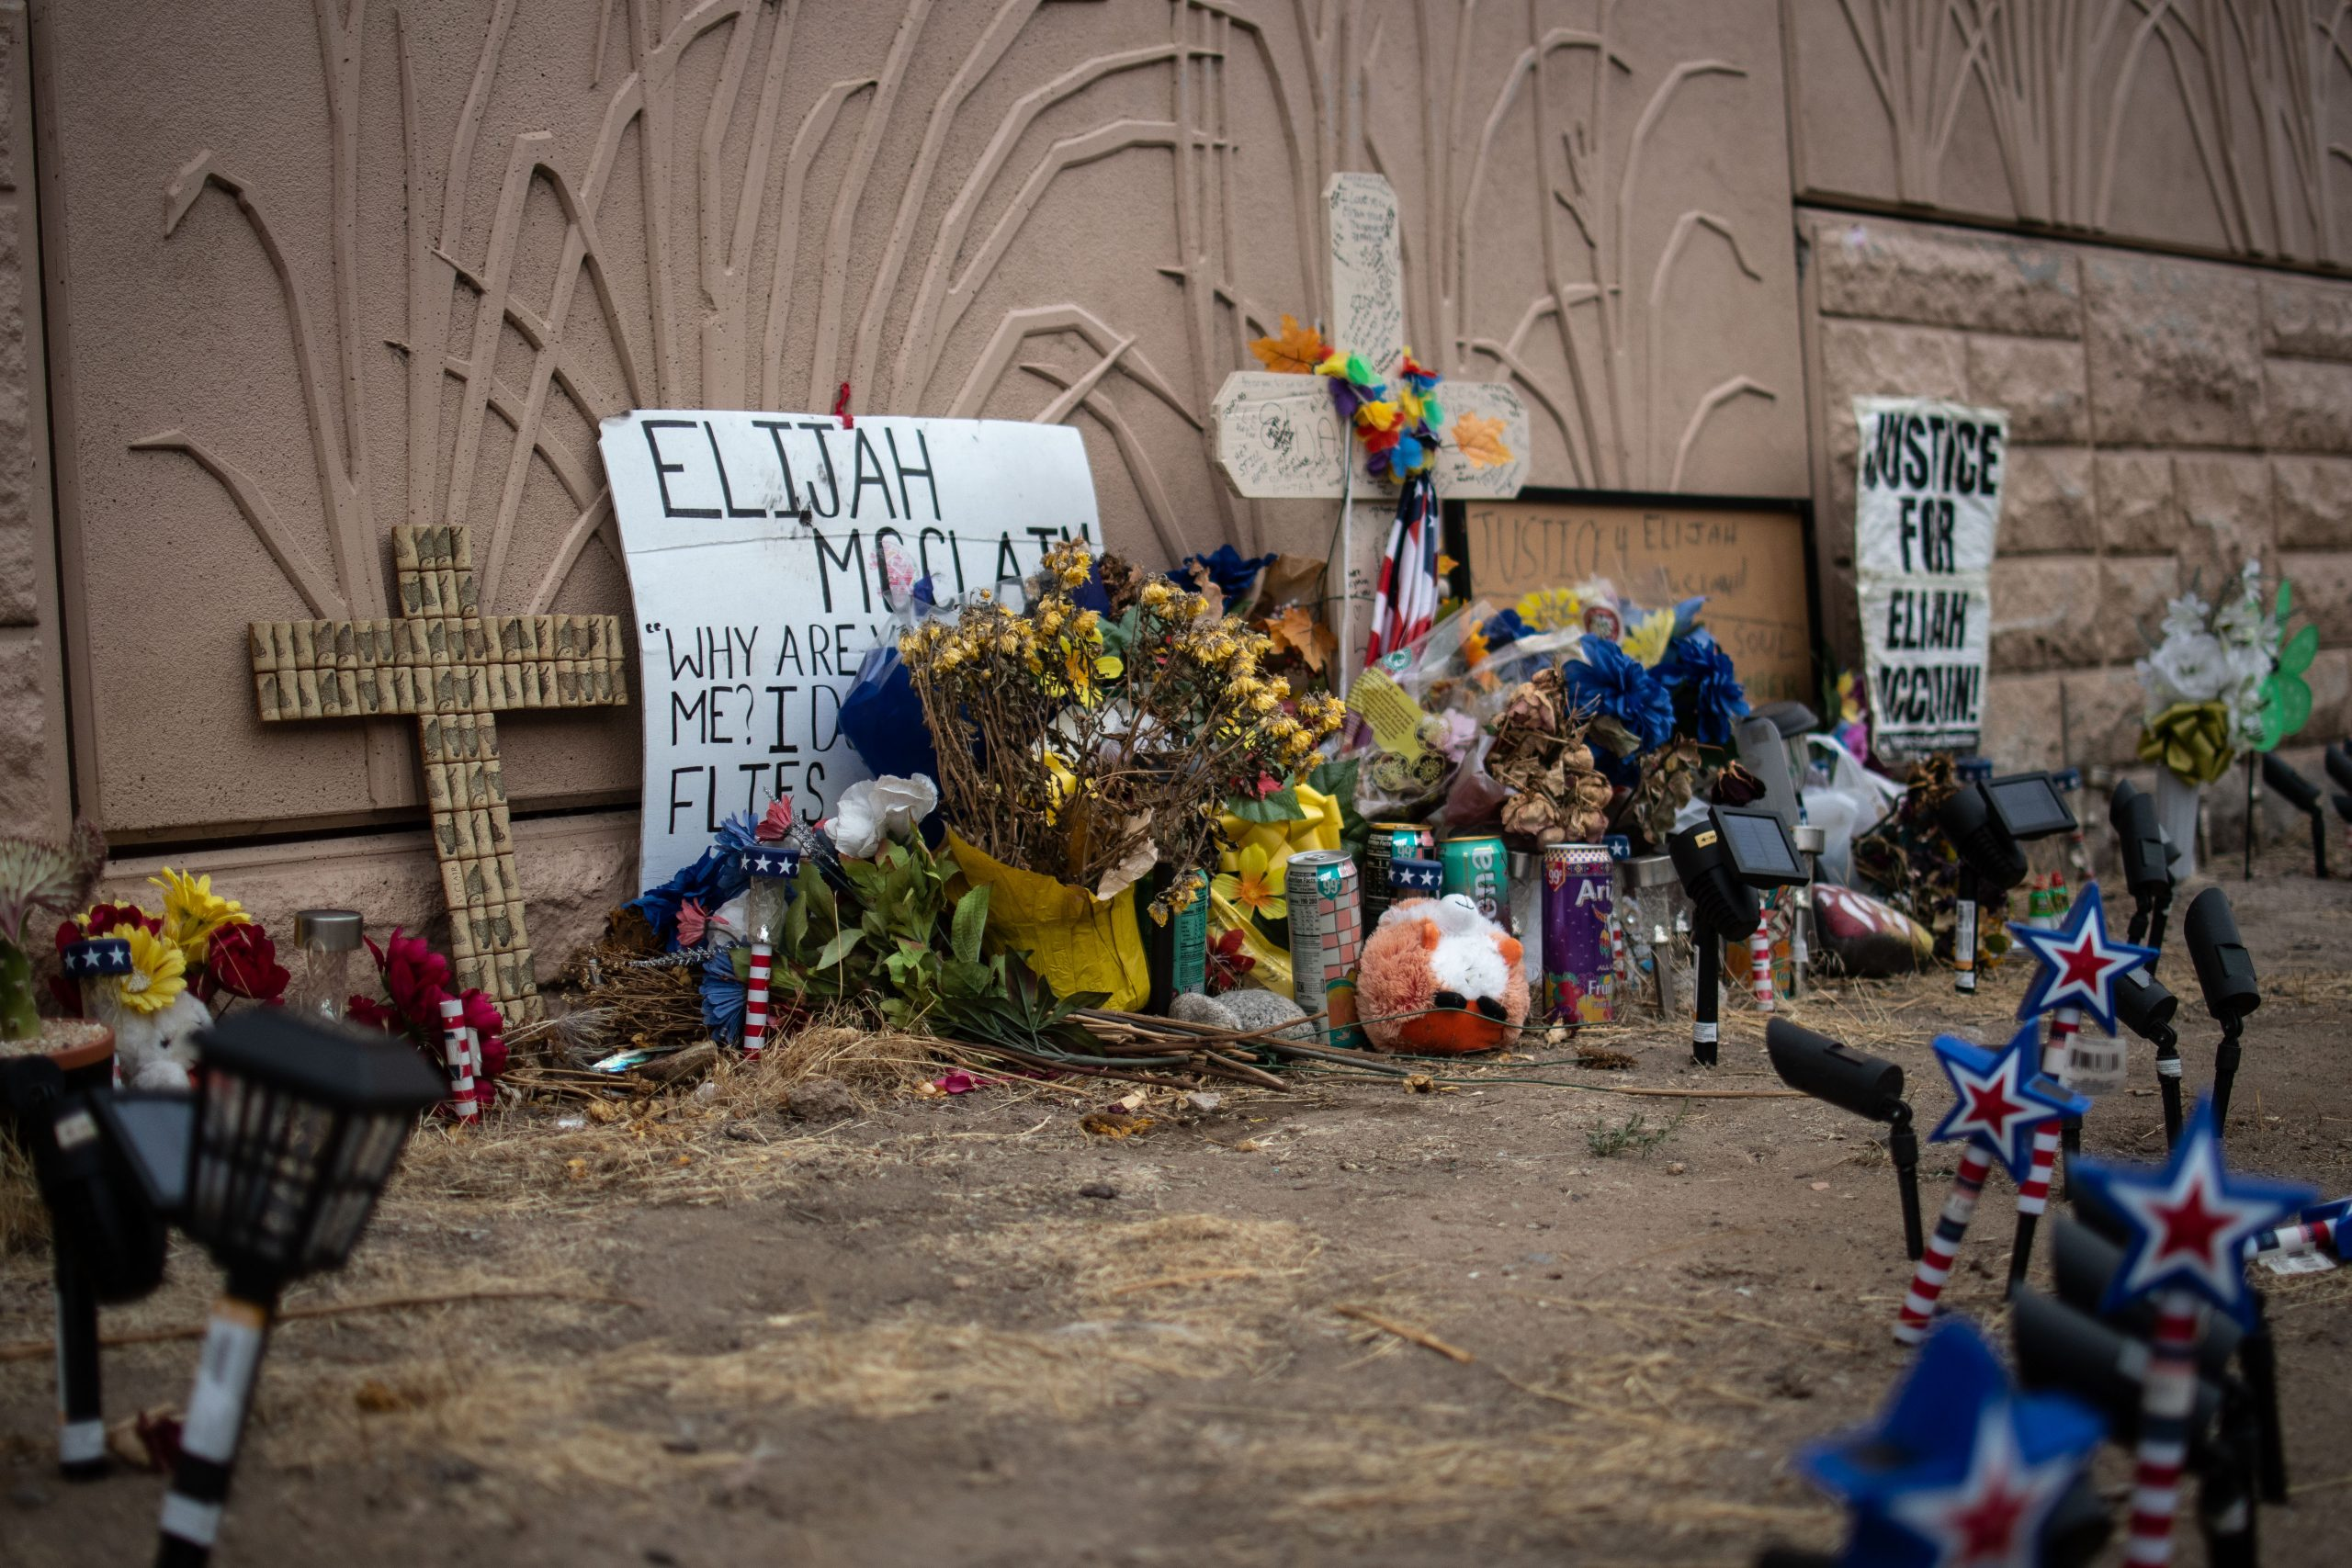 One year, five investigations and a lawsuit: Community seeks justice for Elijah McClain